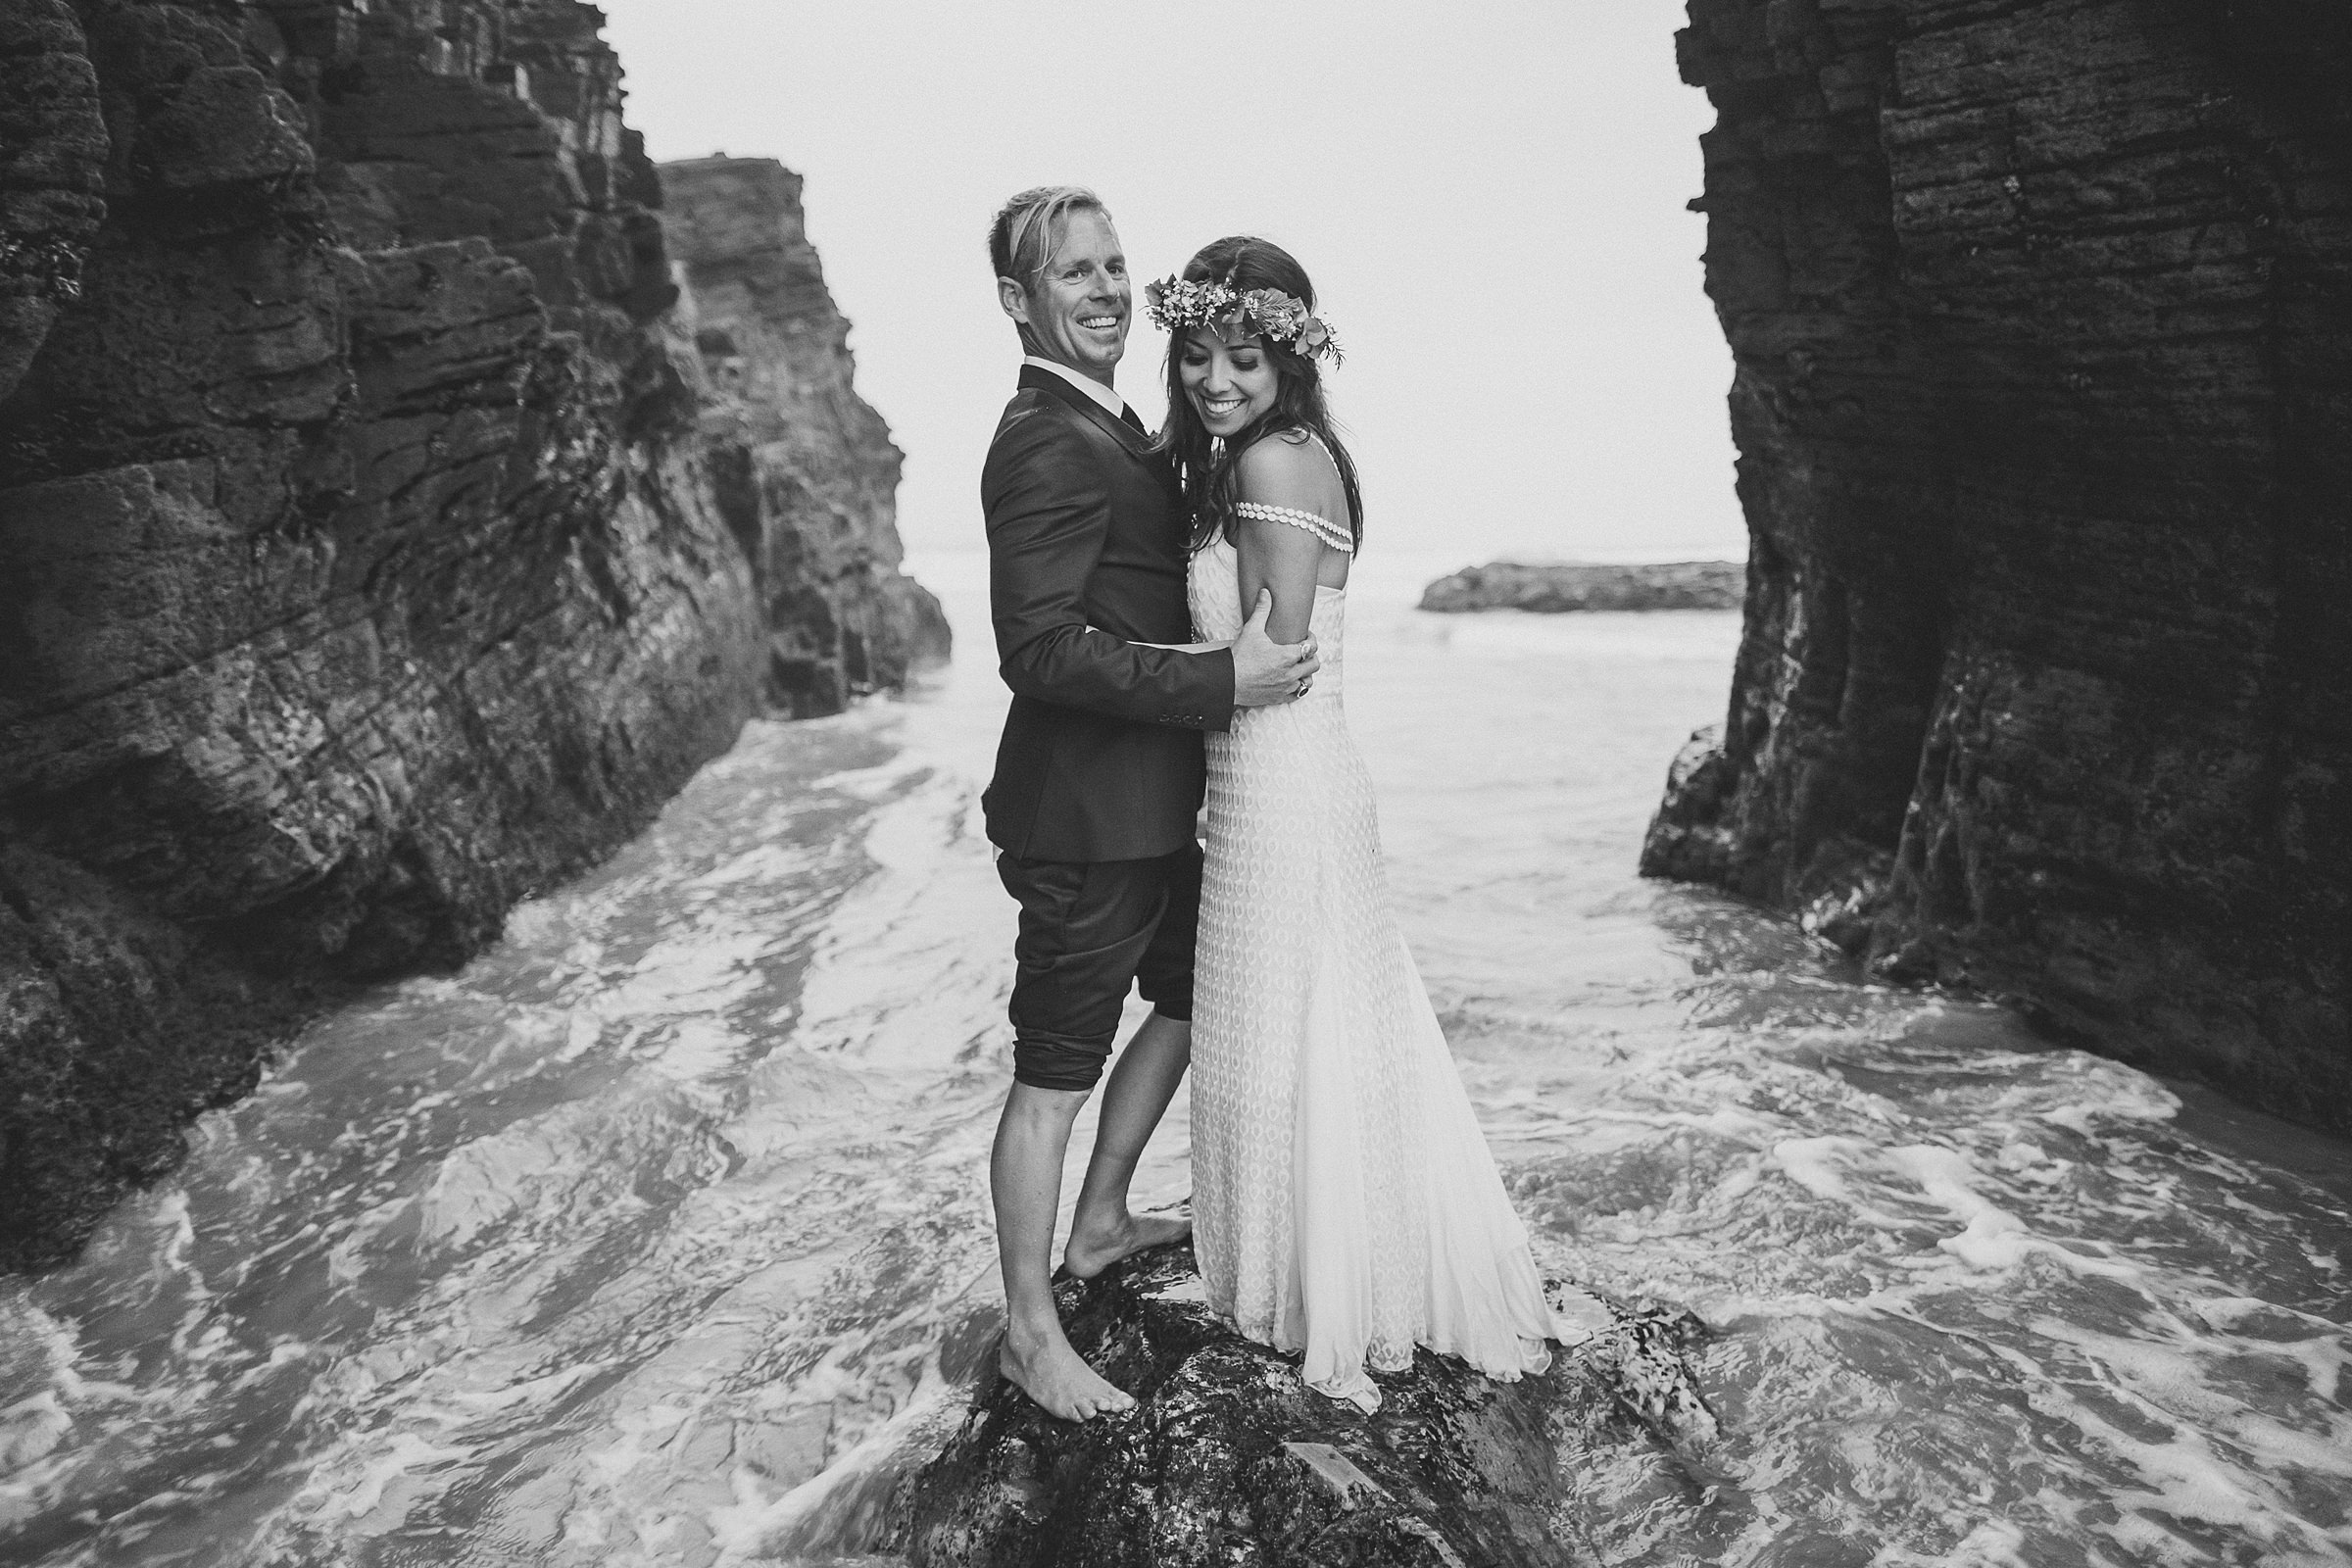 Couple portrait getting their feet wet - photo by Ed Peers Photography